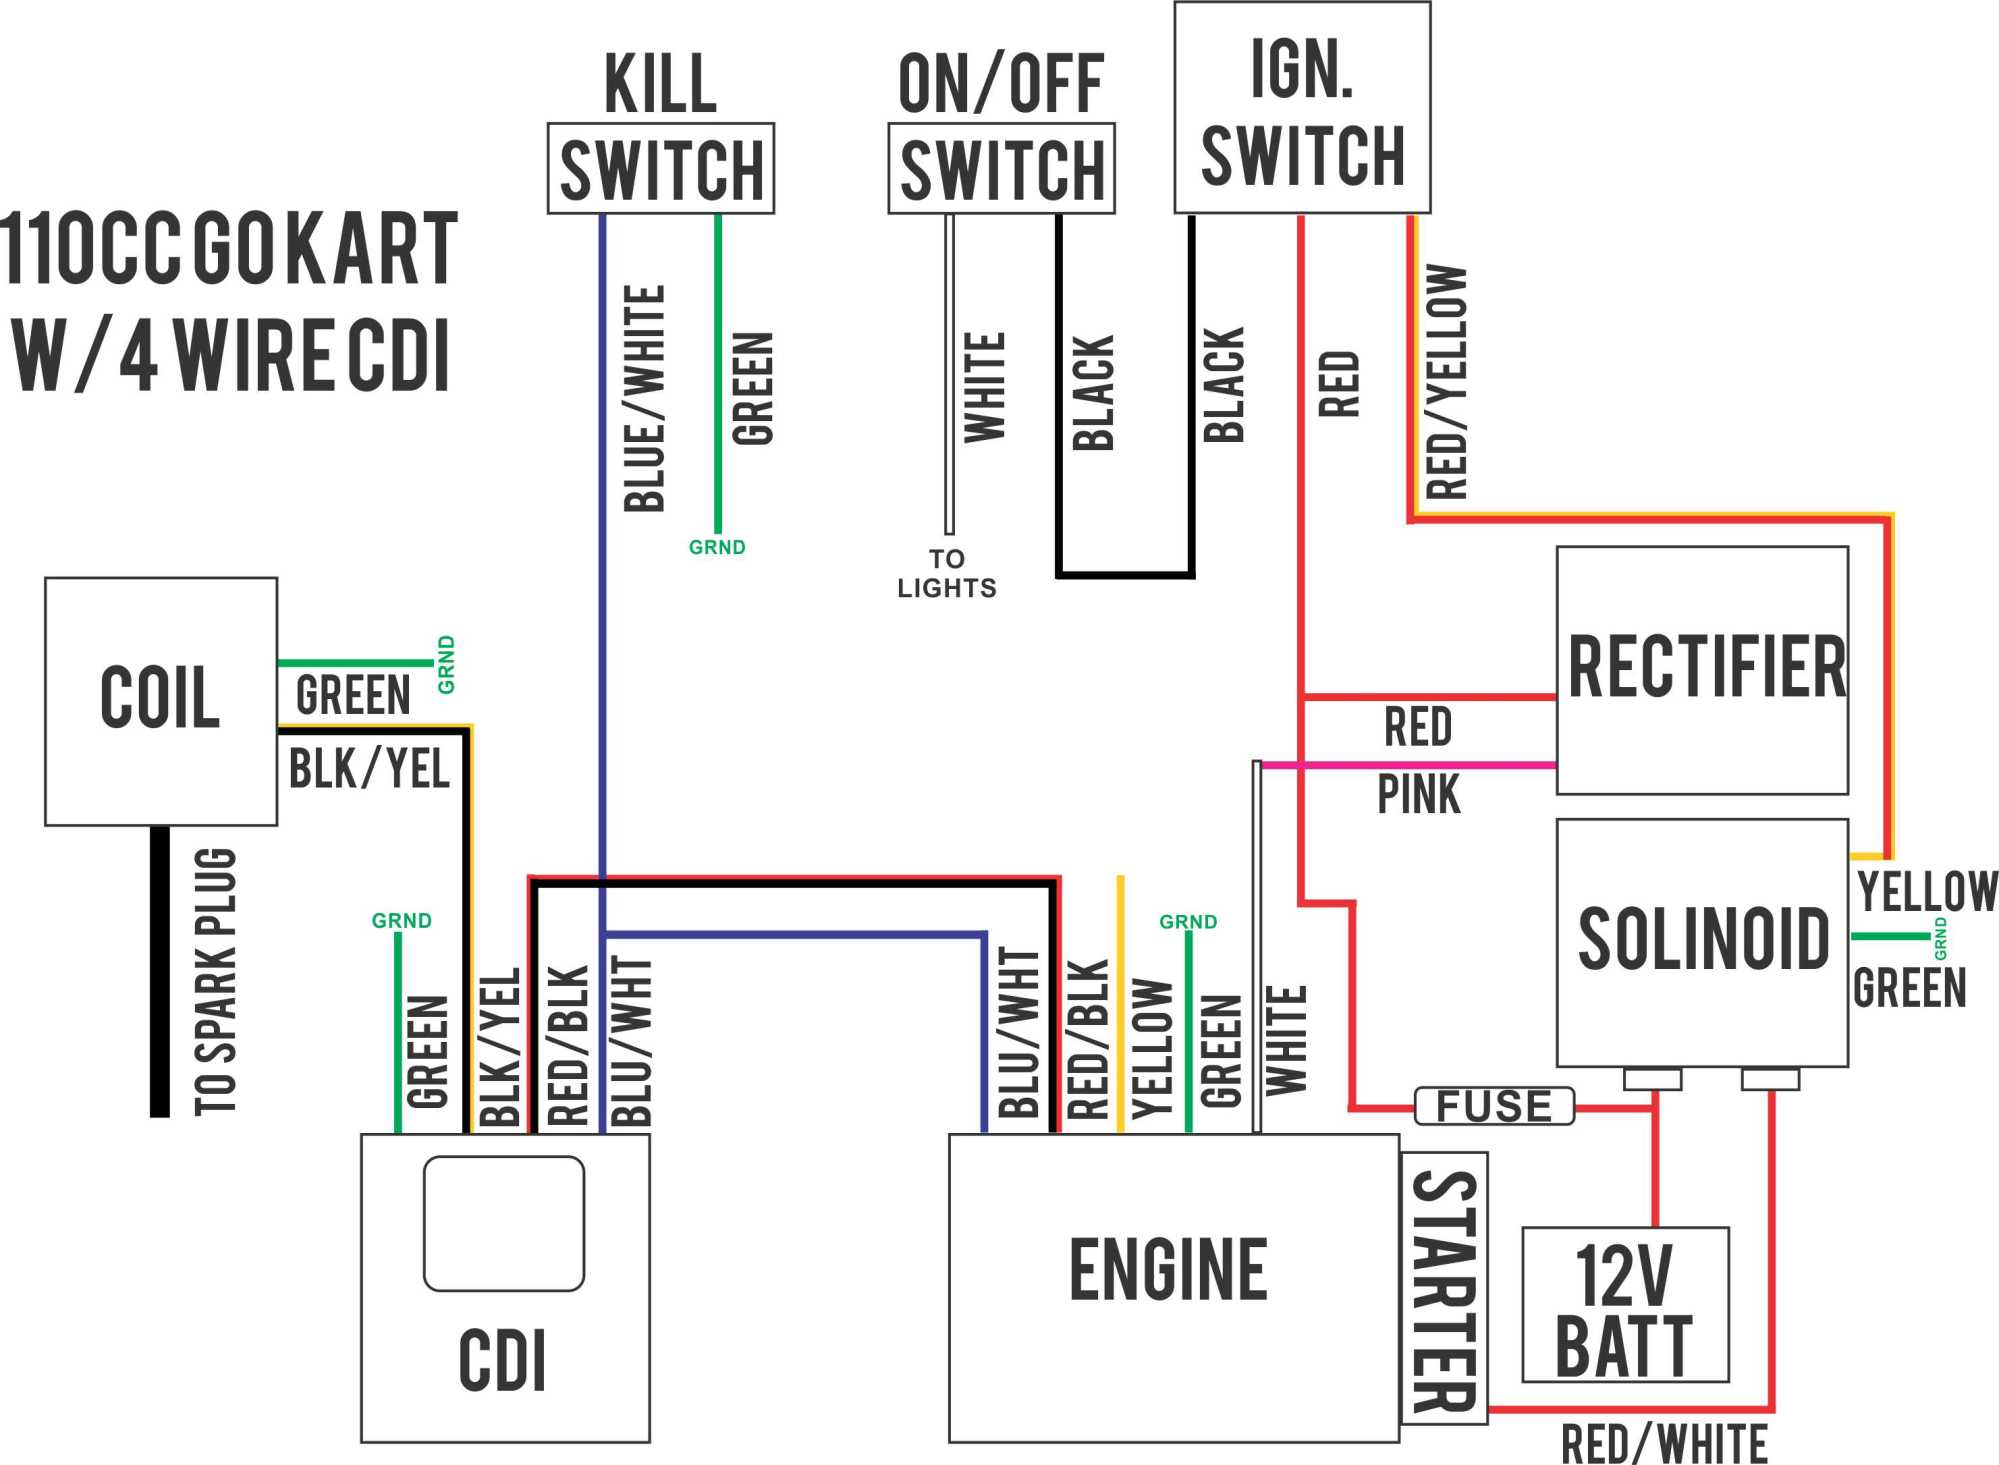 hight resolution of 110 atv 6 wire ignition switch wiring diagram wiring diagram rh ksefanzone com 110 light switch